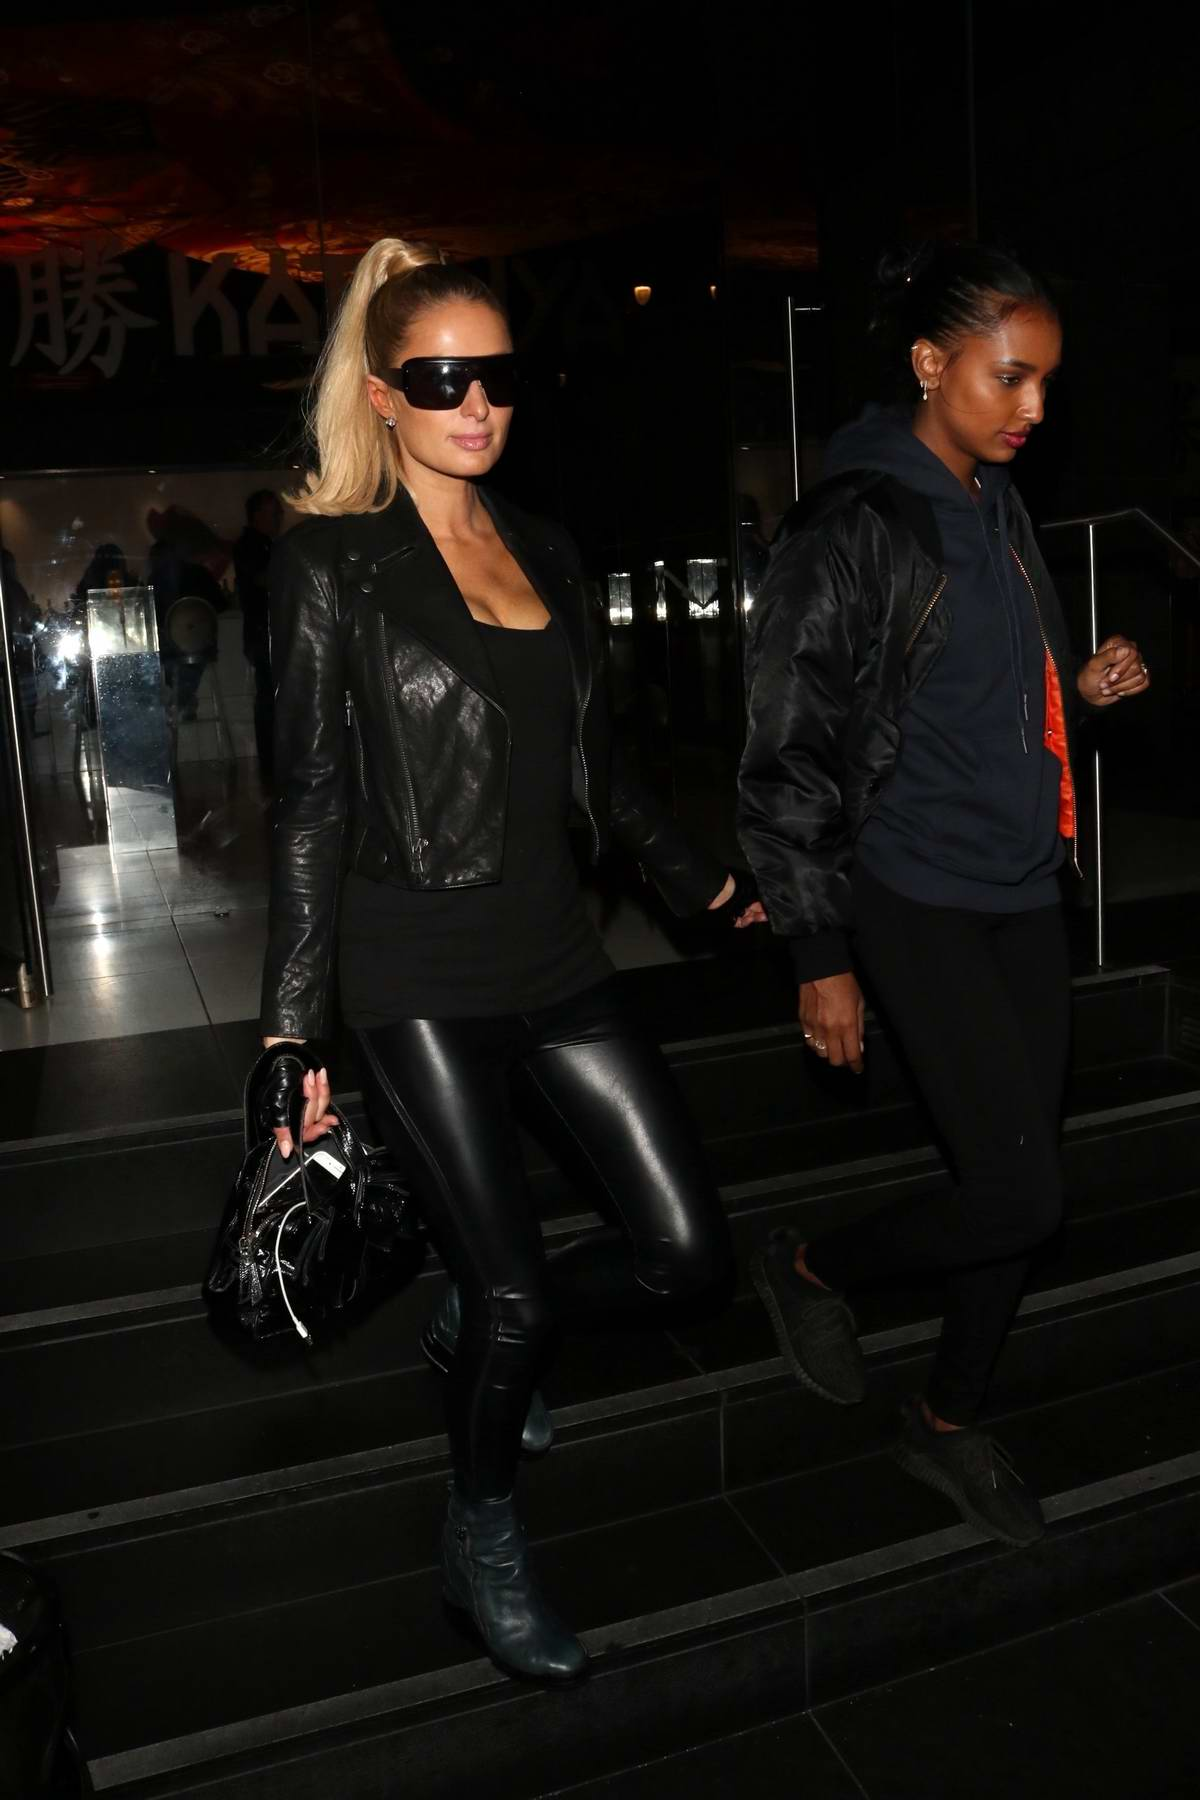 Paris Hilton and Jasmine Tookes step out for a night of fun at Katsuya in Hollywood, California